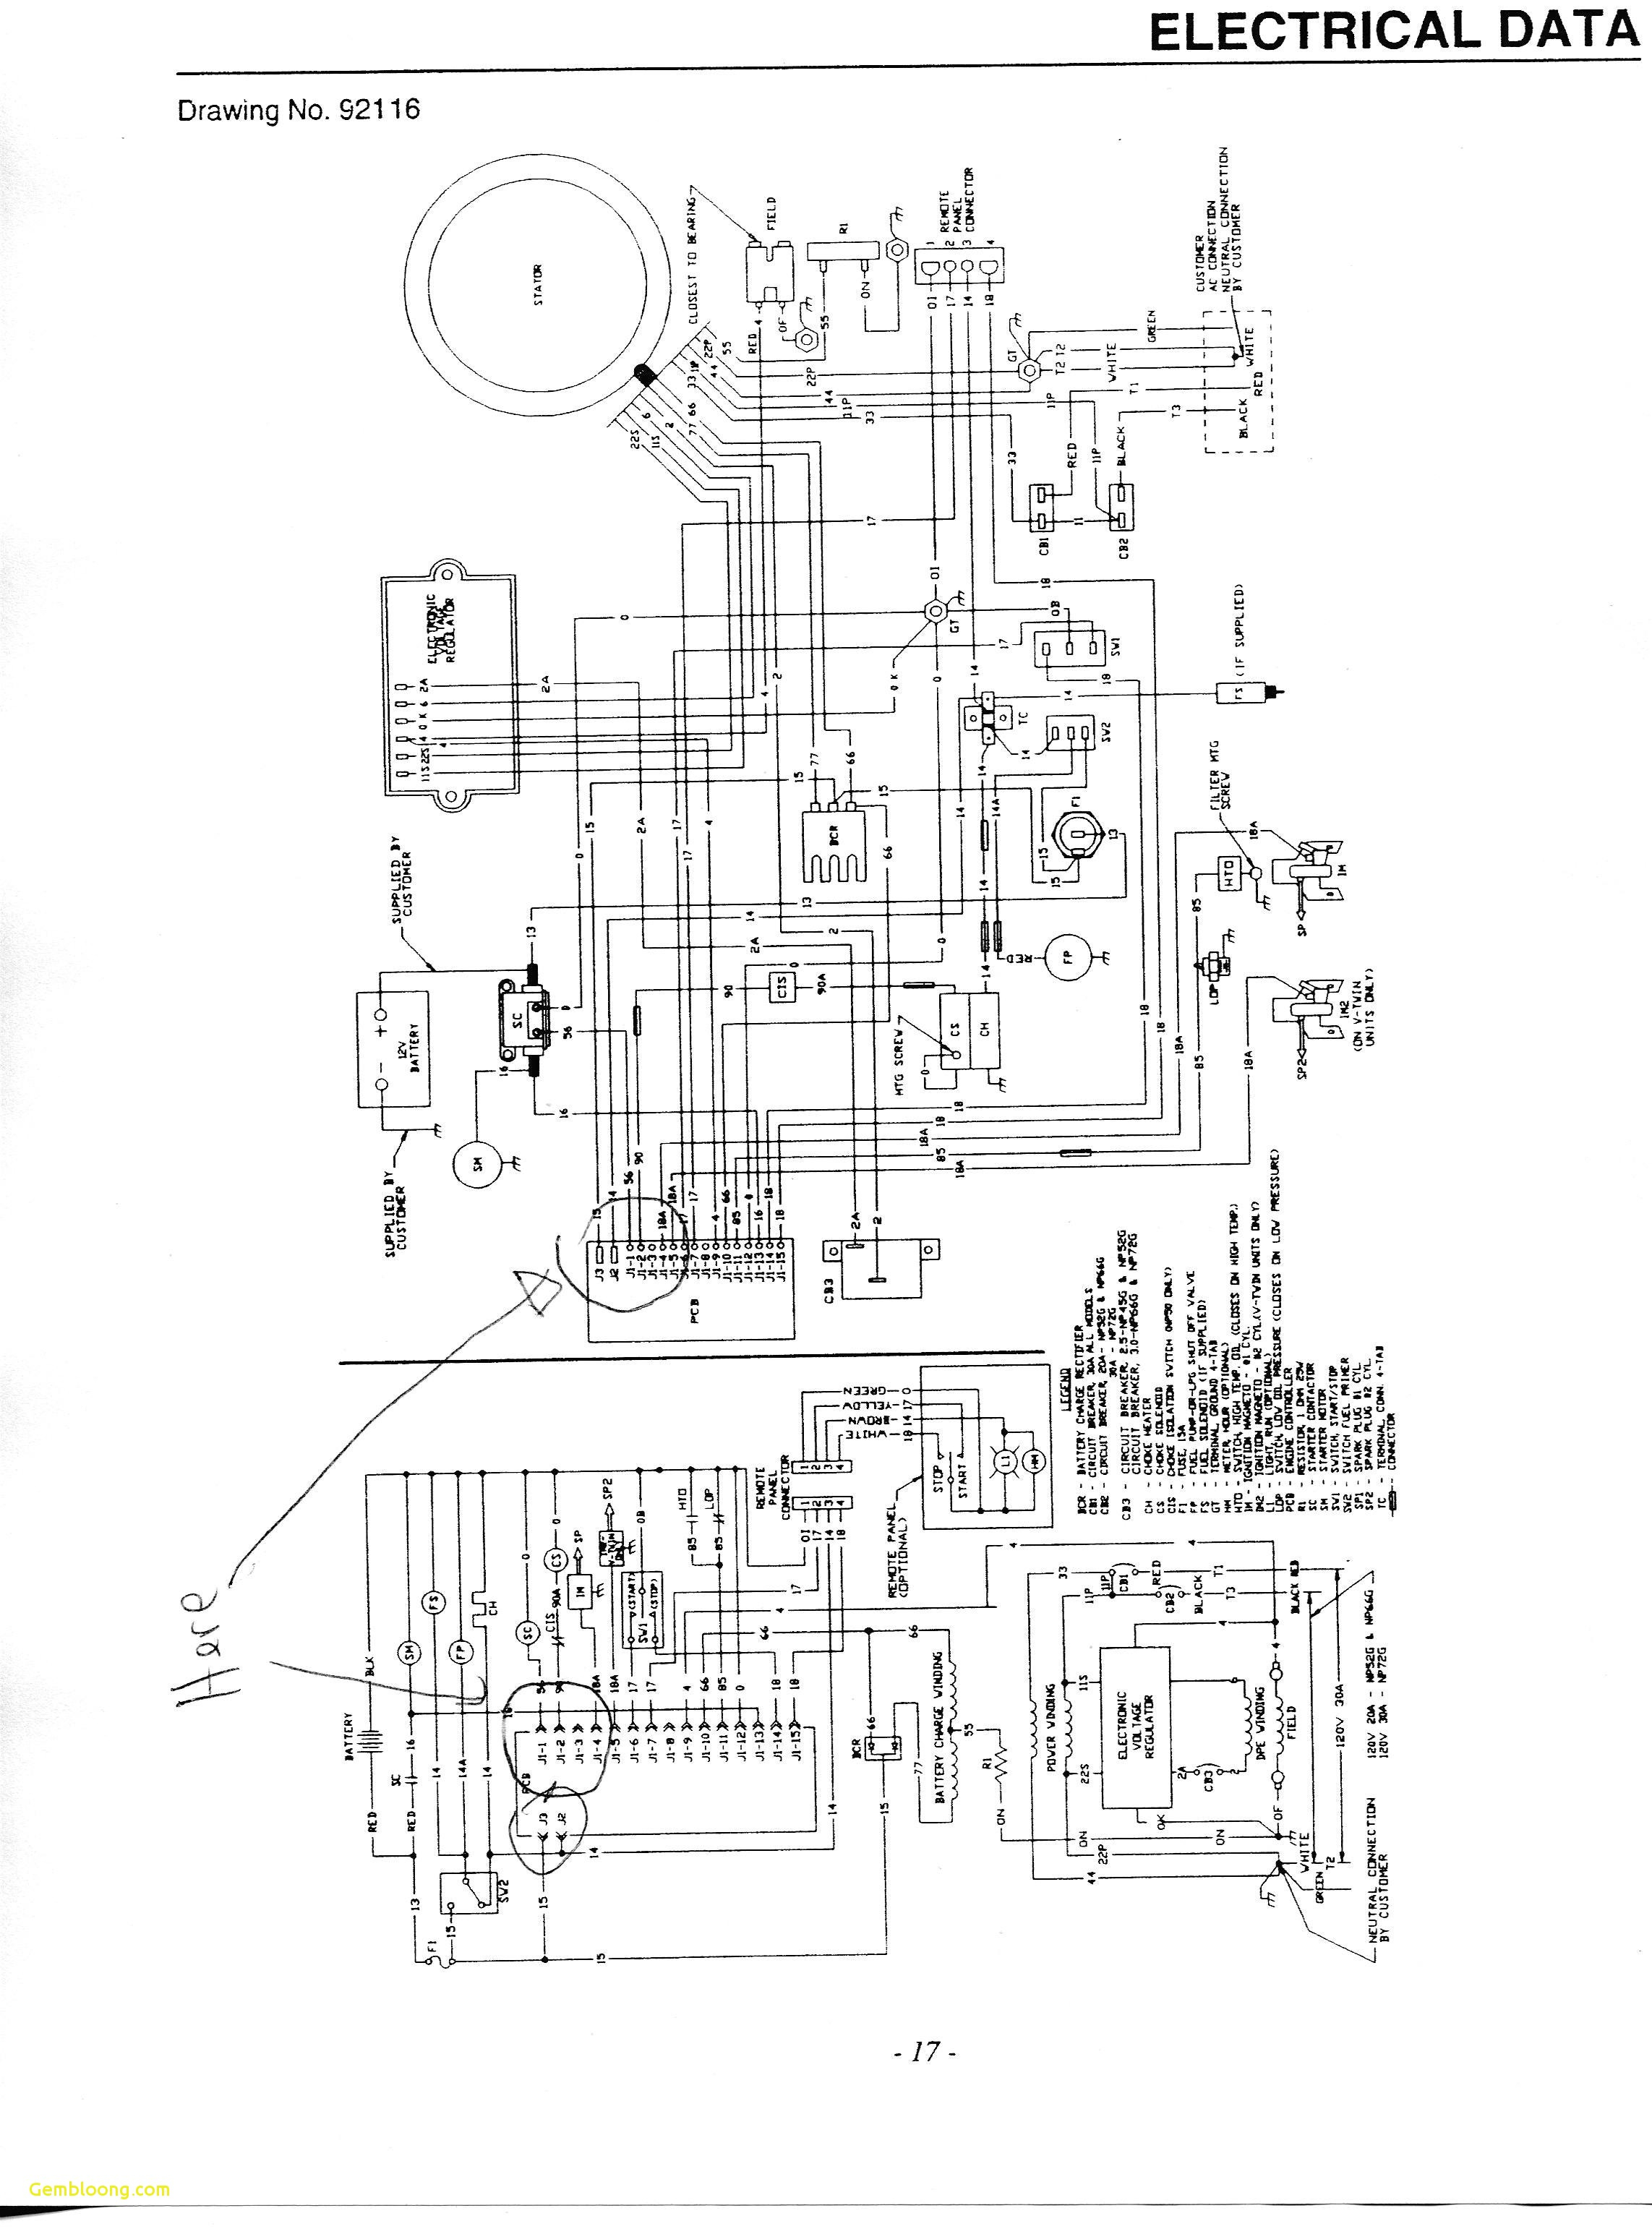 Olympian generator wiring diagram 4001e gallery wiring diagram sample honda generator diagram olympian generator wiring diagram 4001e download olympian generator wiring diagram wiring library 17 i download wiring diagram